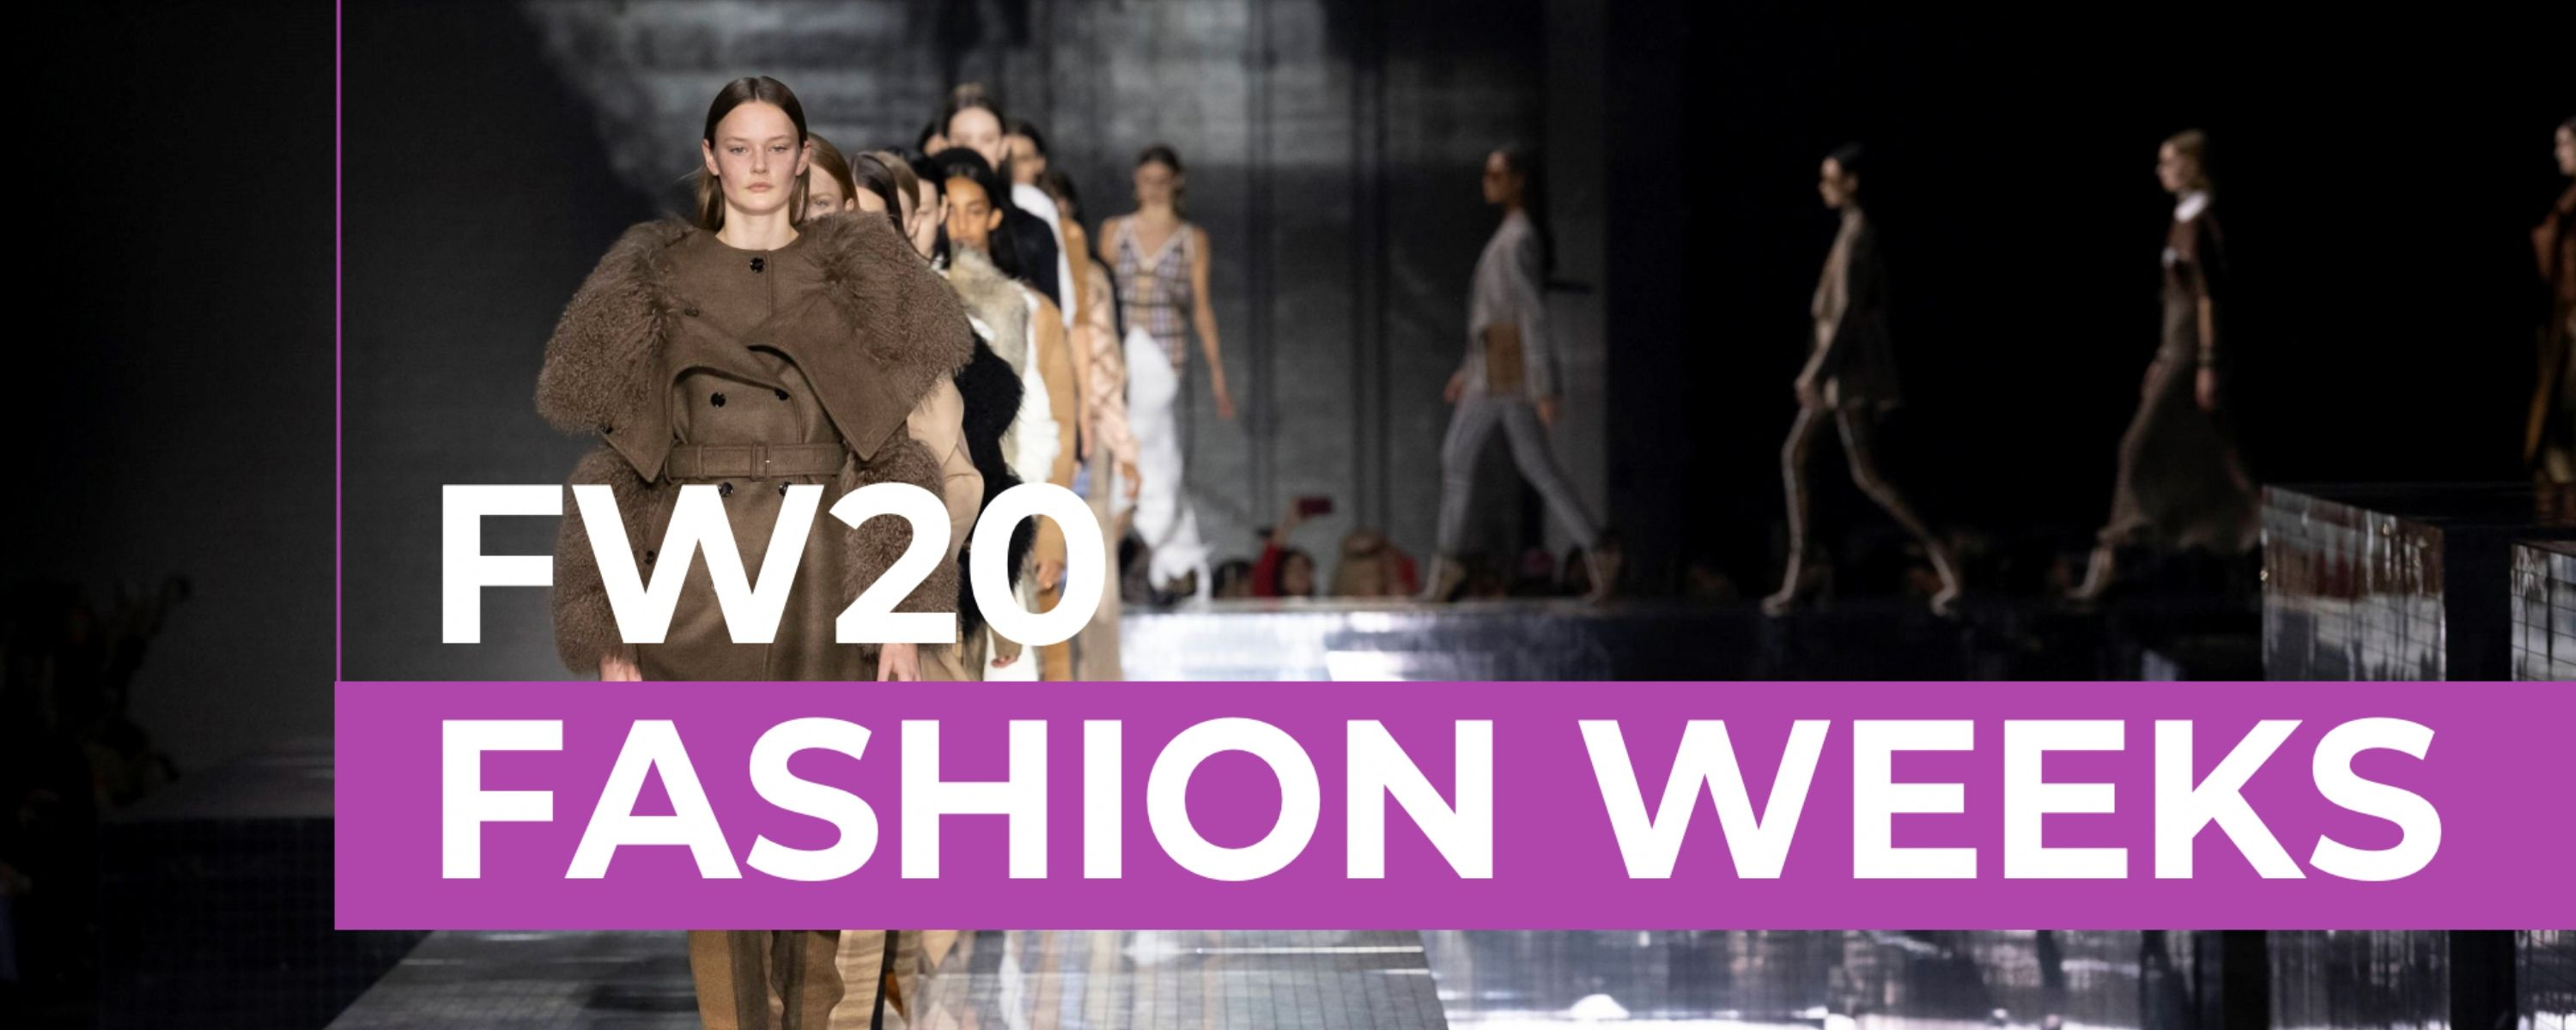 FW20 Fashion Weeks